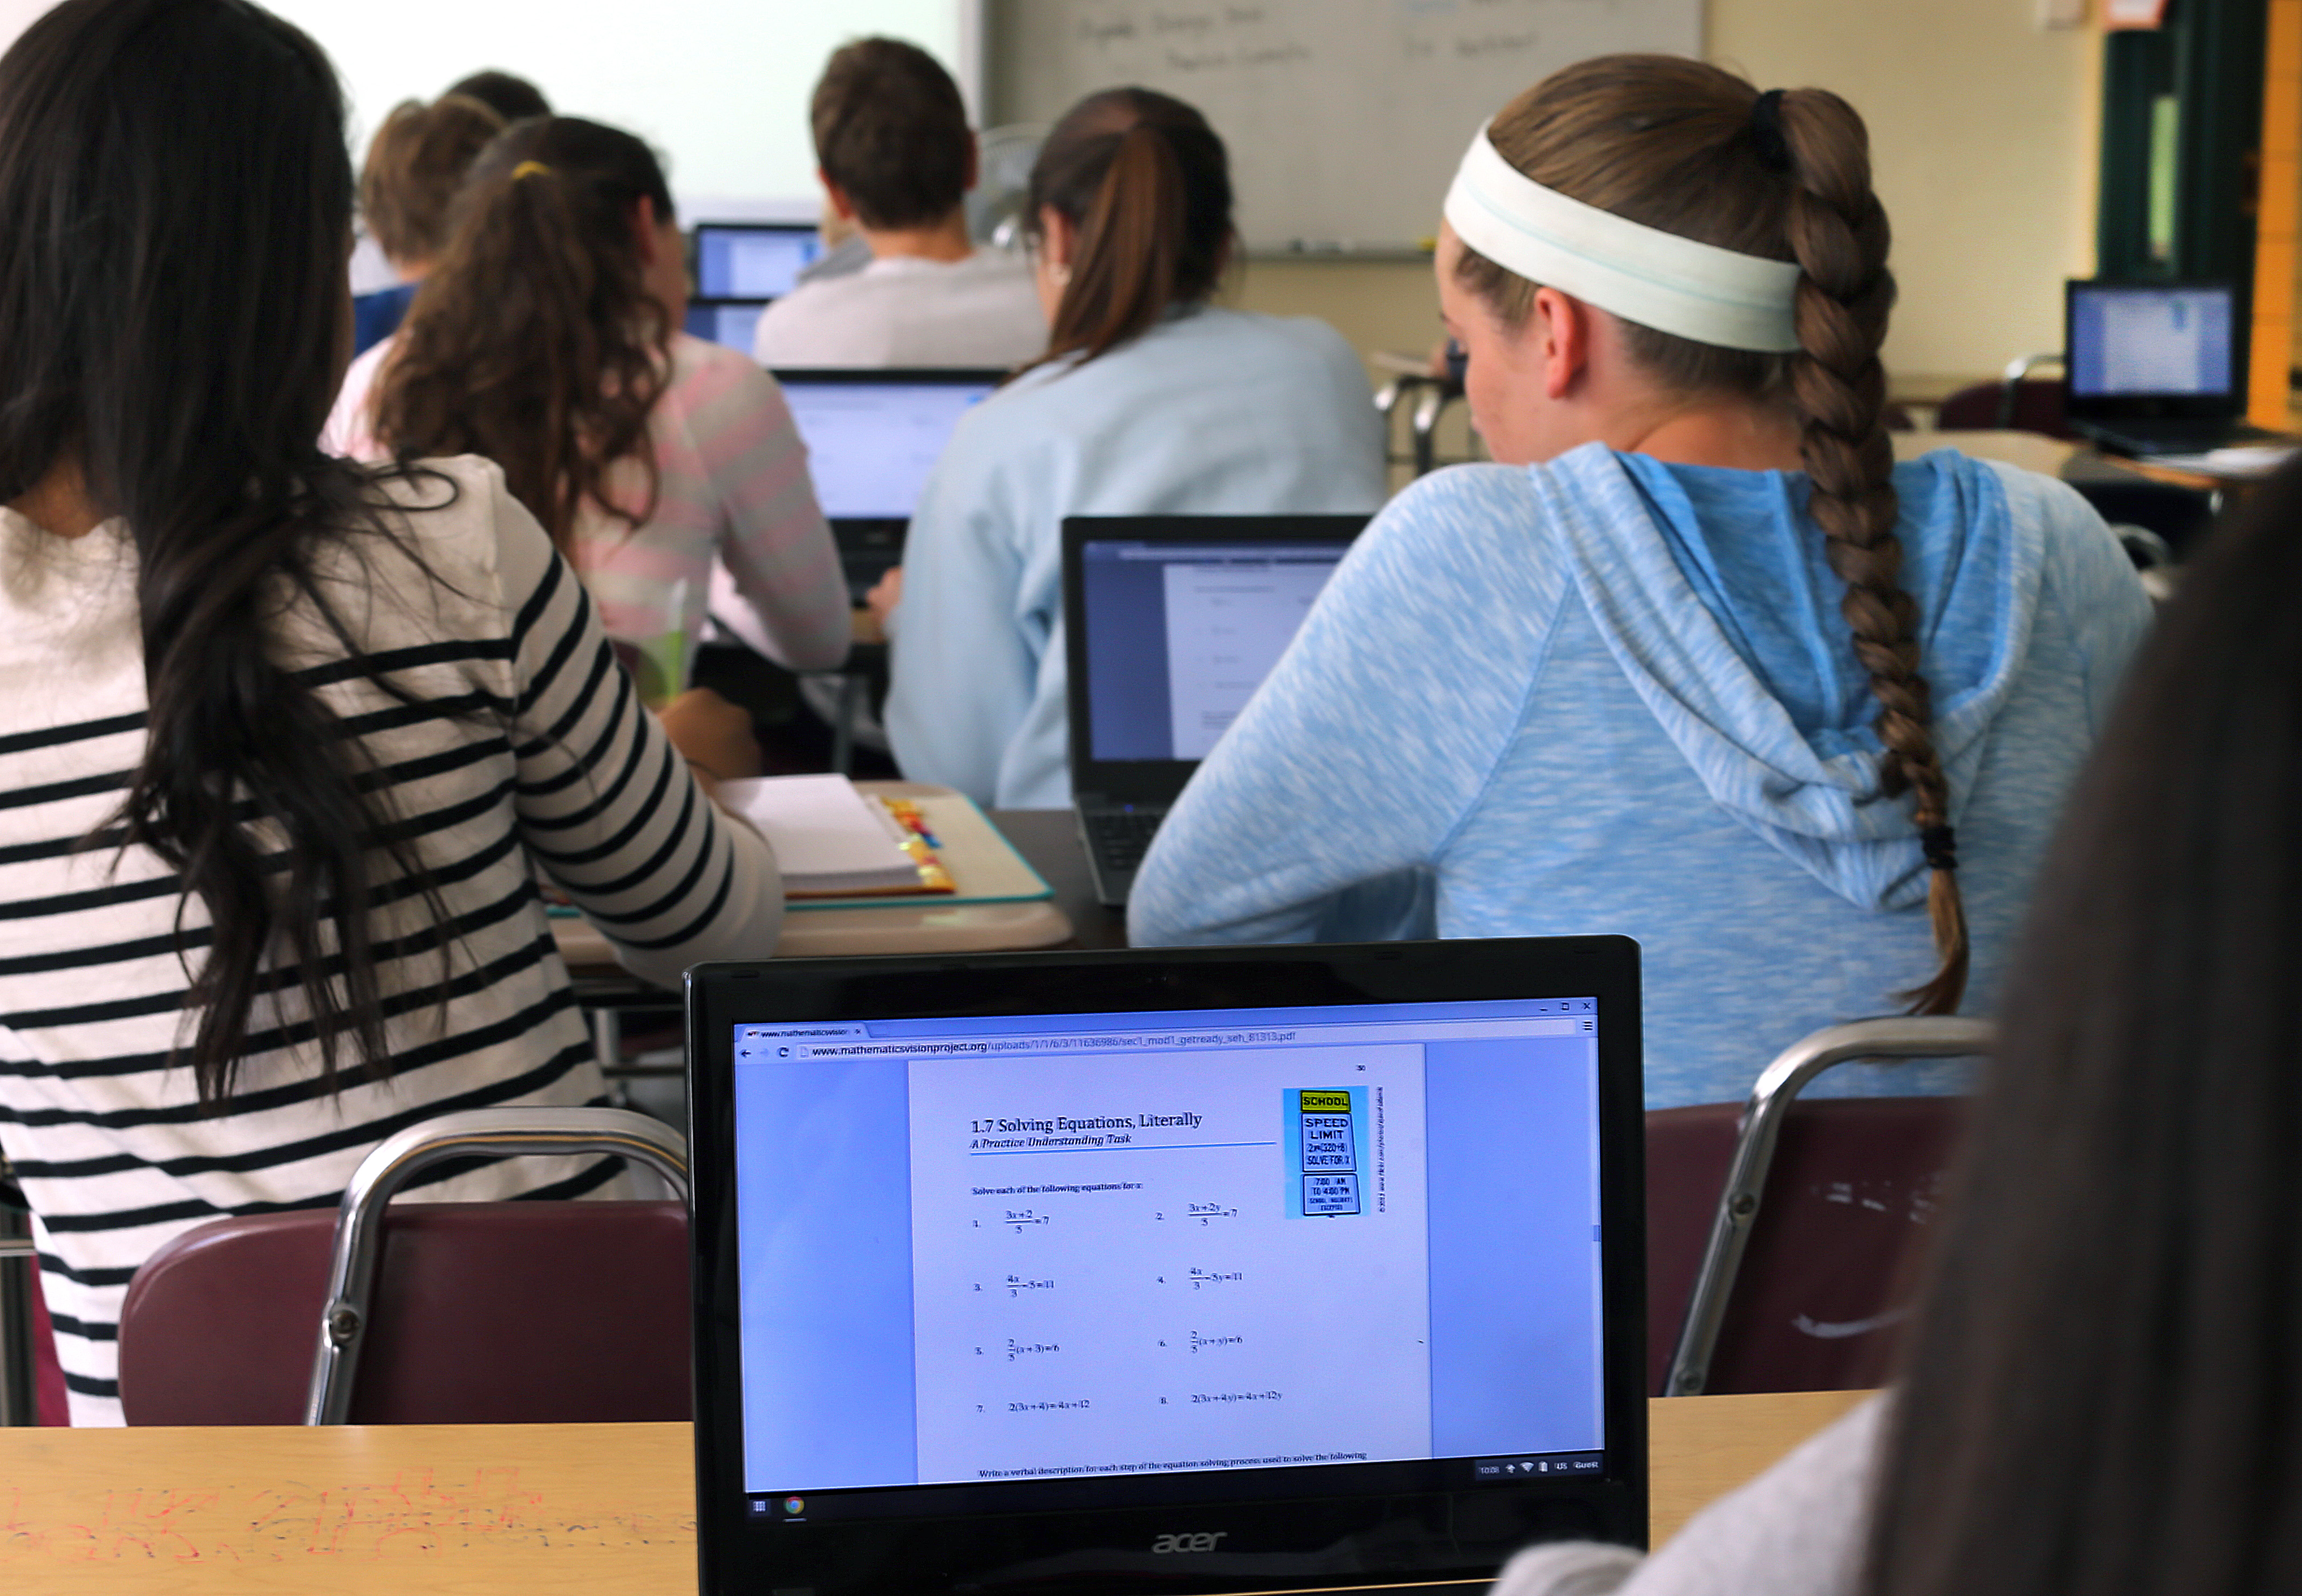 Students use Chromebooks in a classroom.